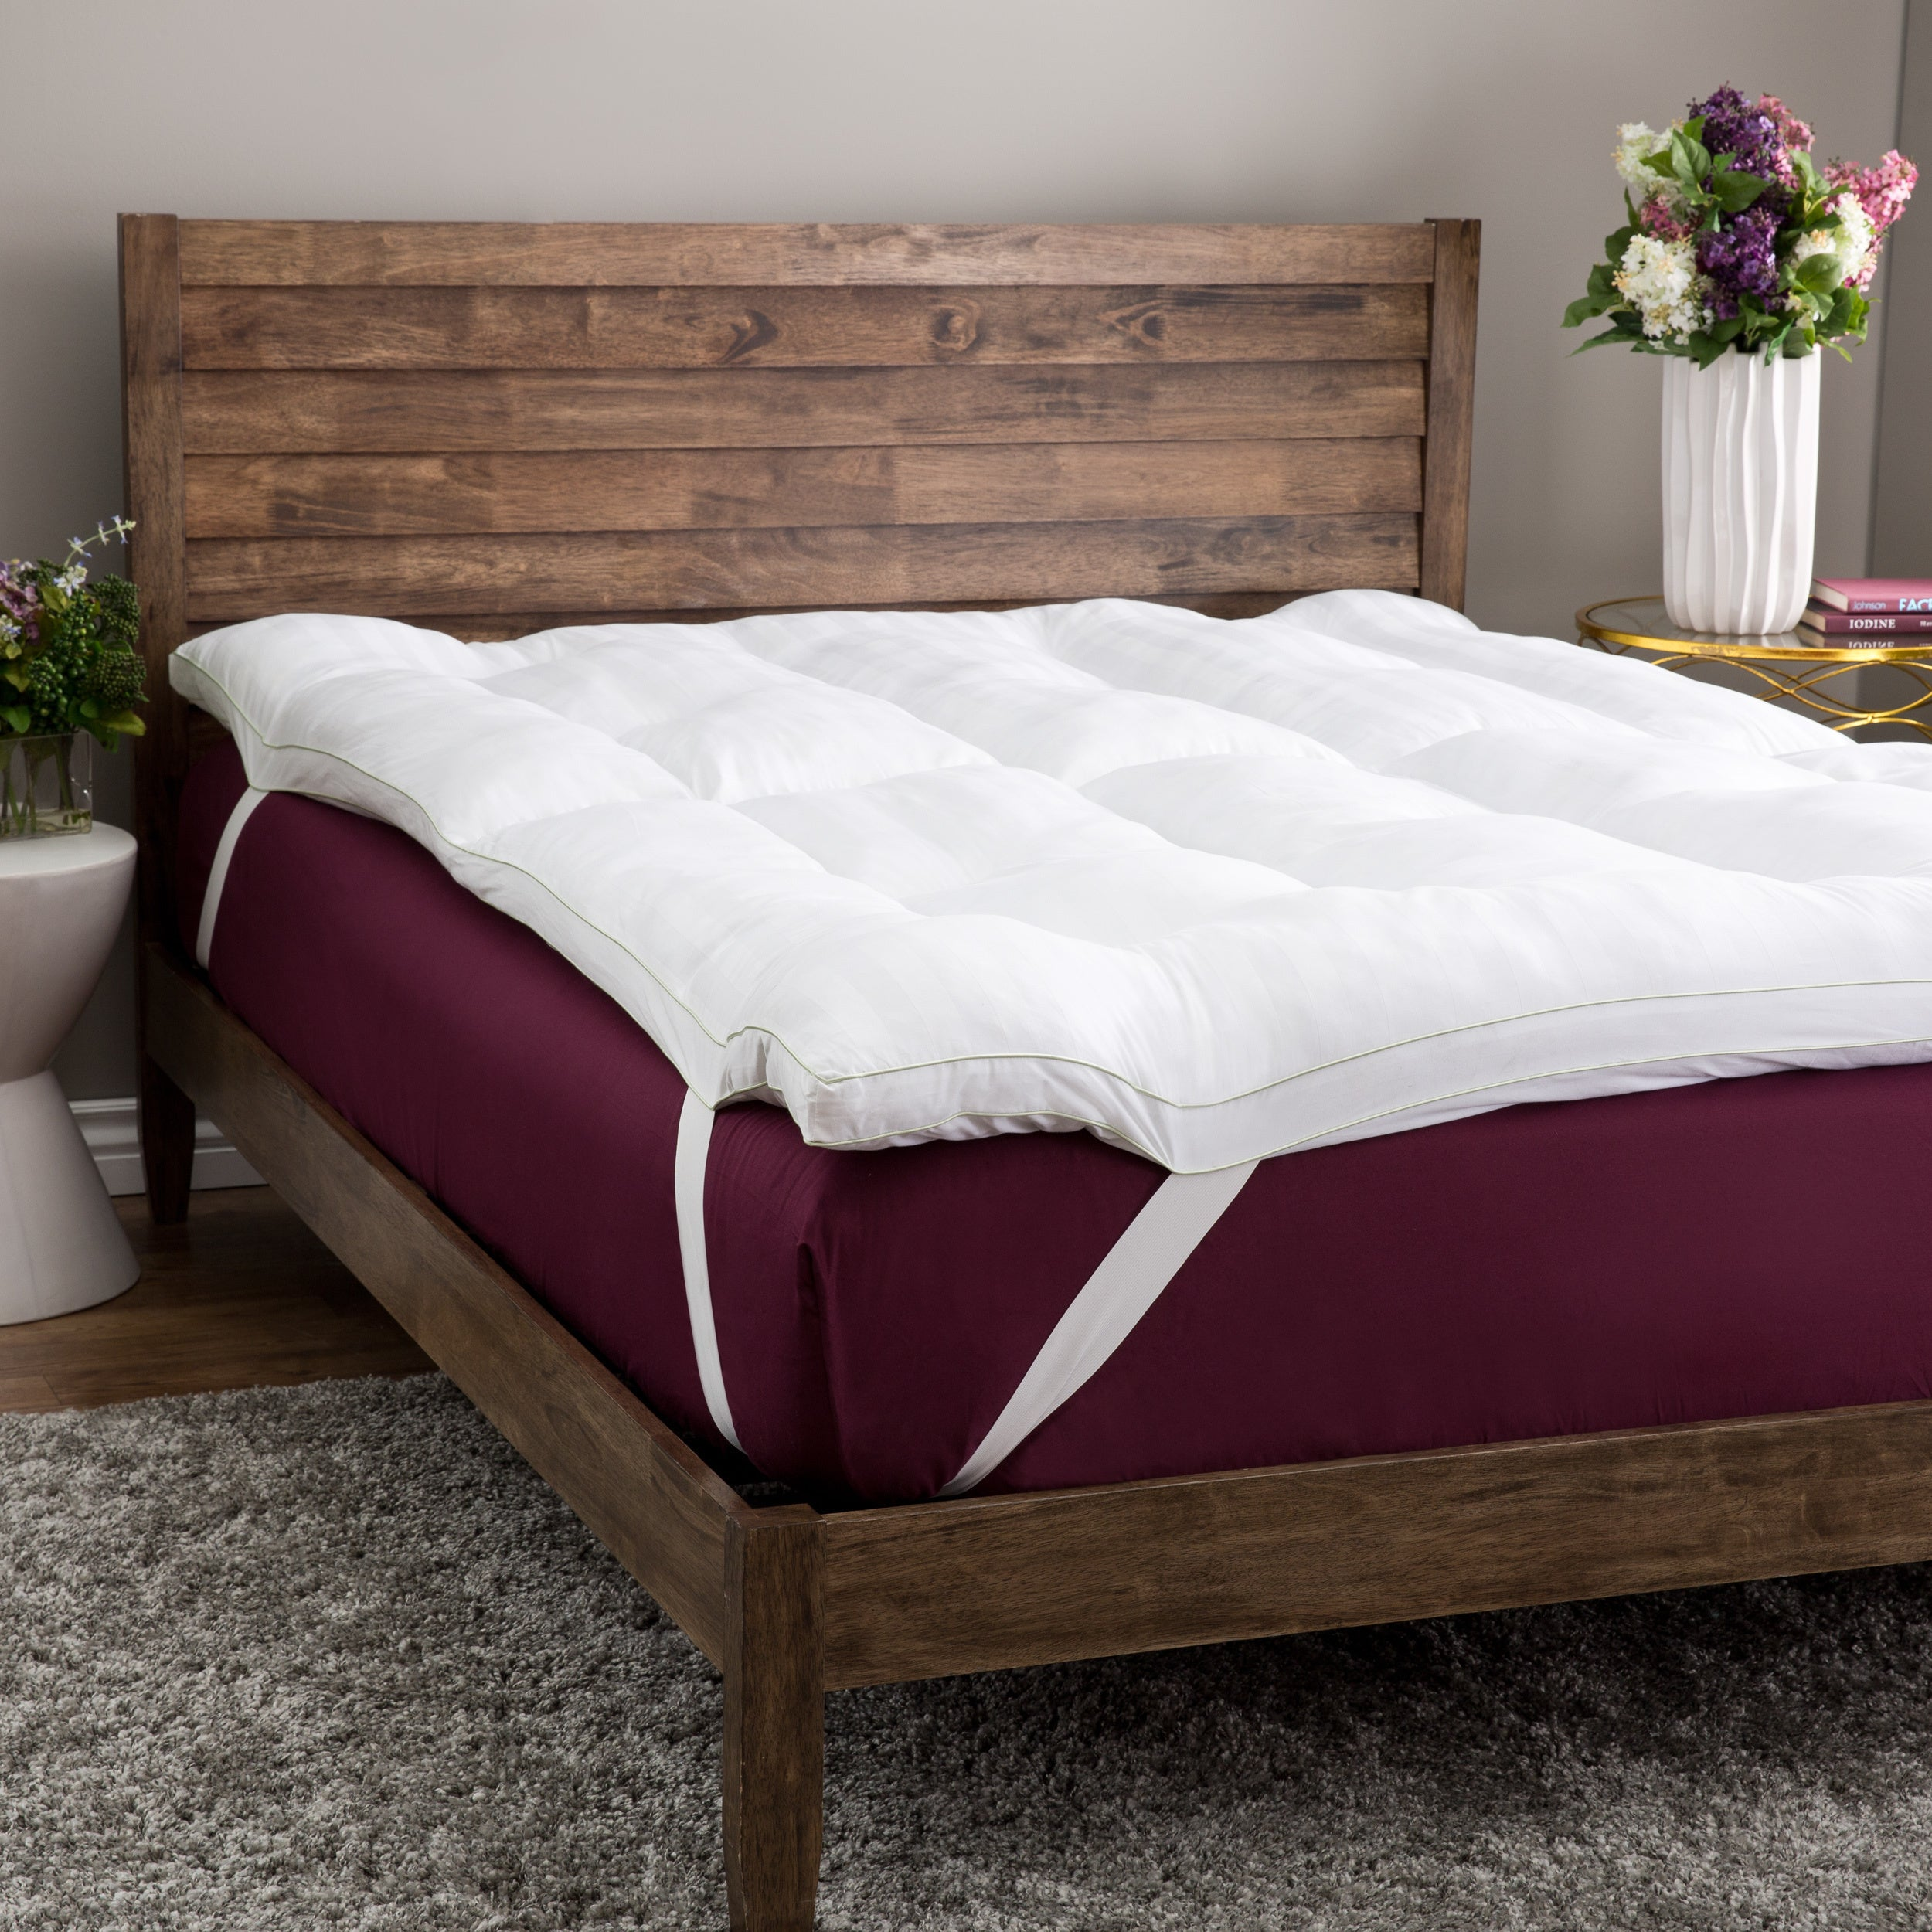 solutions bedding mattress product overstock bath slumber and free fiber shipping memory topper inch today foam gel